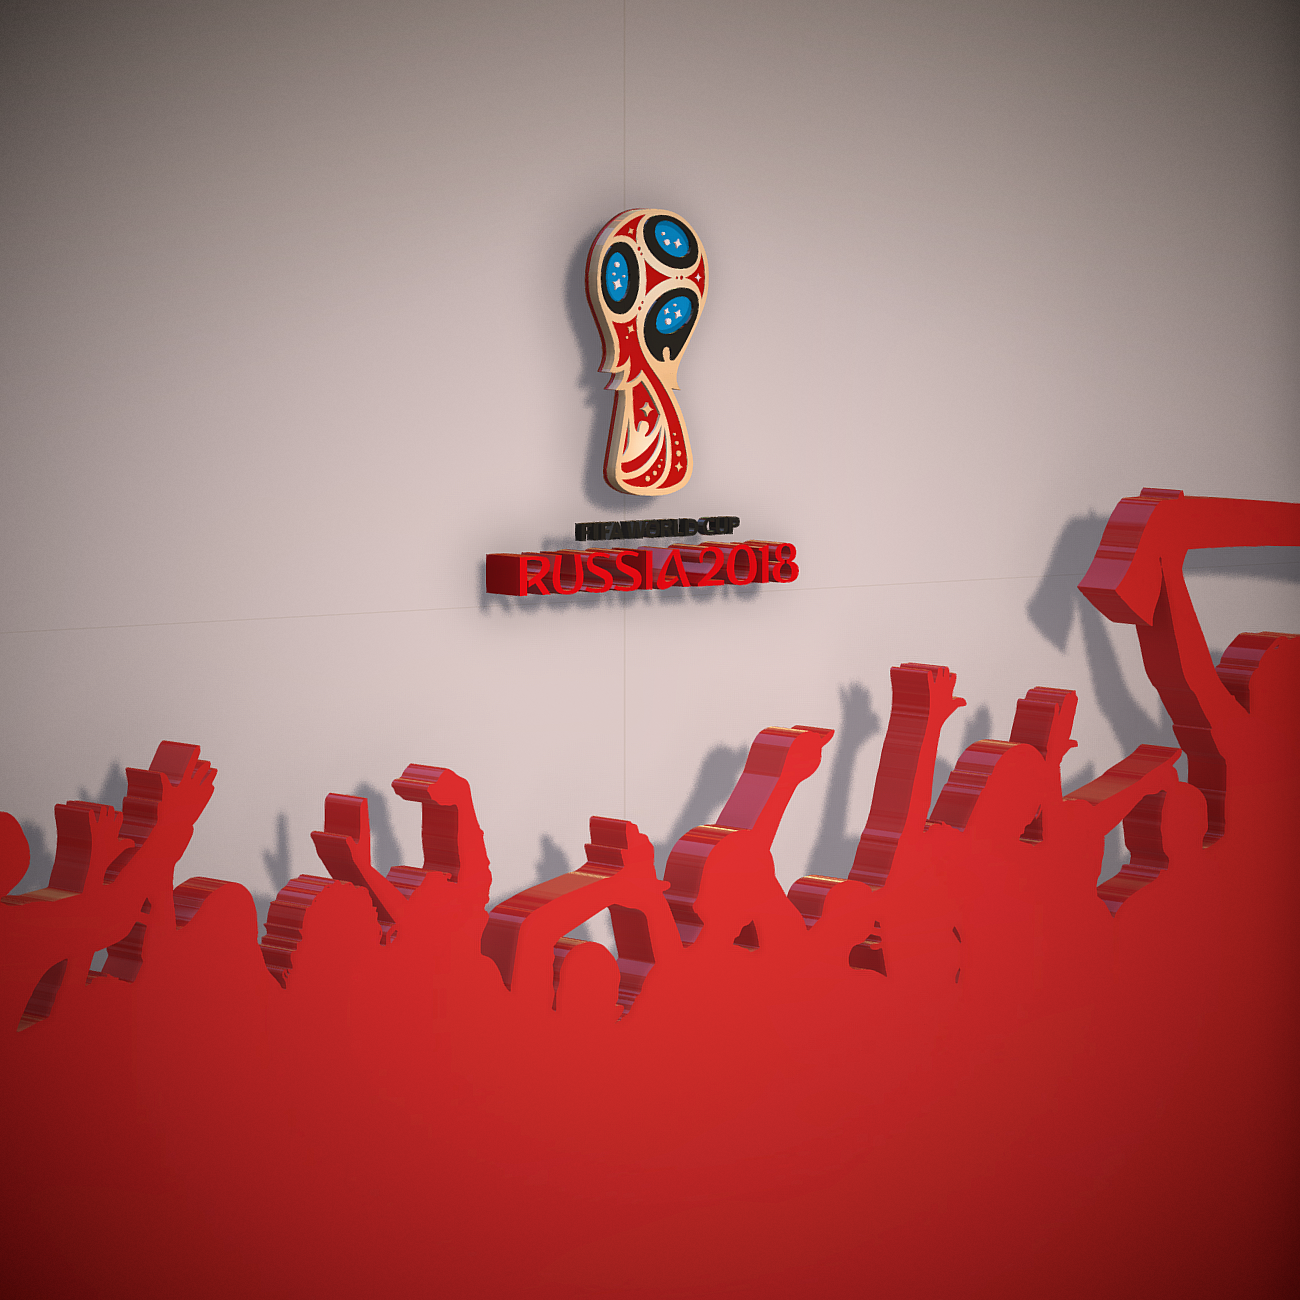 fifa world cup russia 2018 slyle 3d model 3ds max fbx ma mb obj 269742